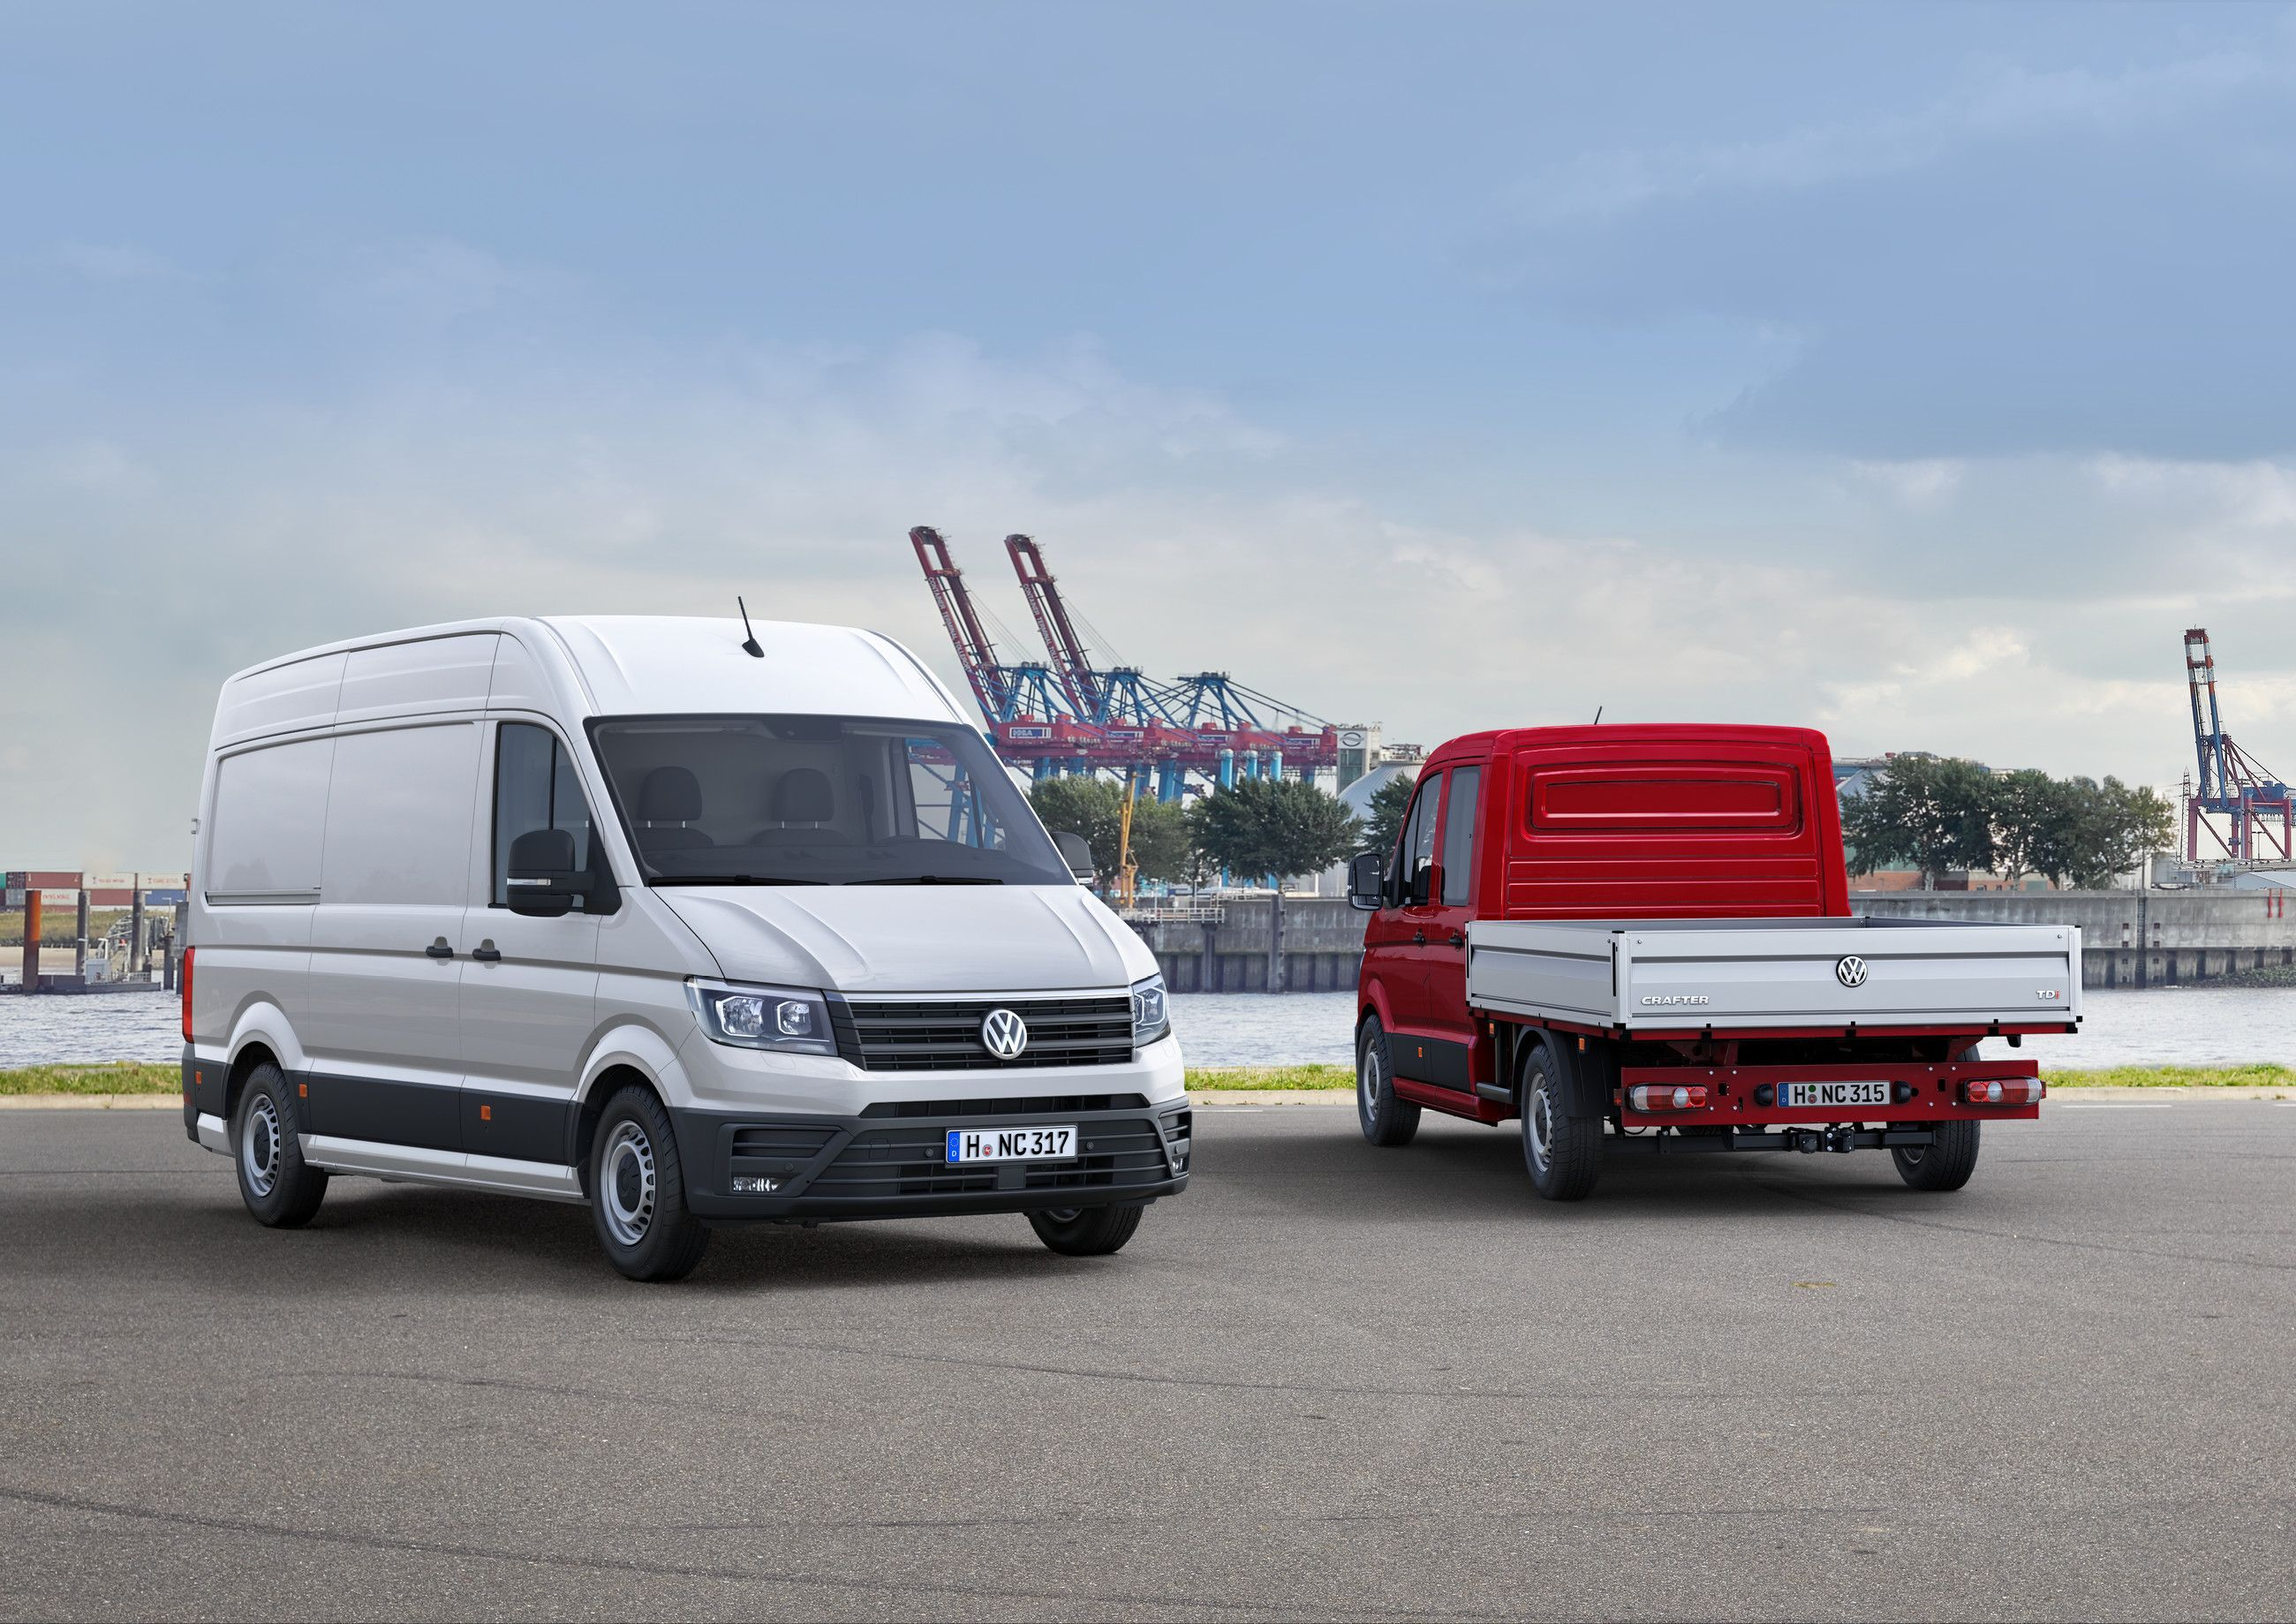 2017 volkswagen crafter owner of the title van of the year 2017 rh pinterest com